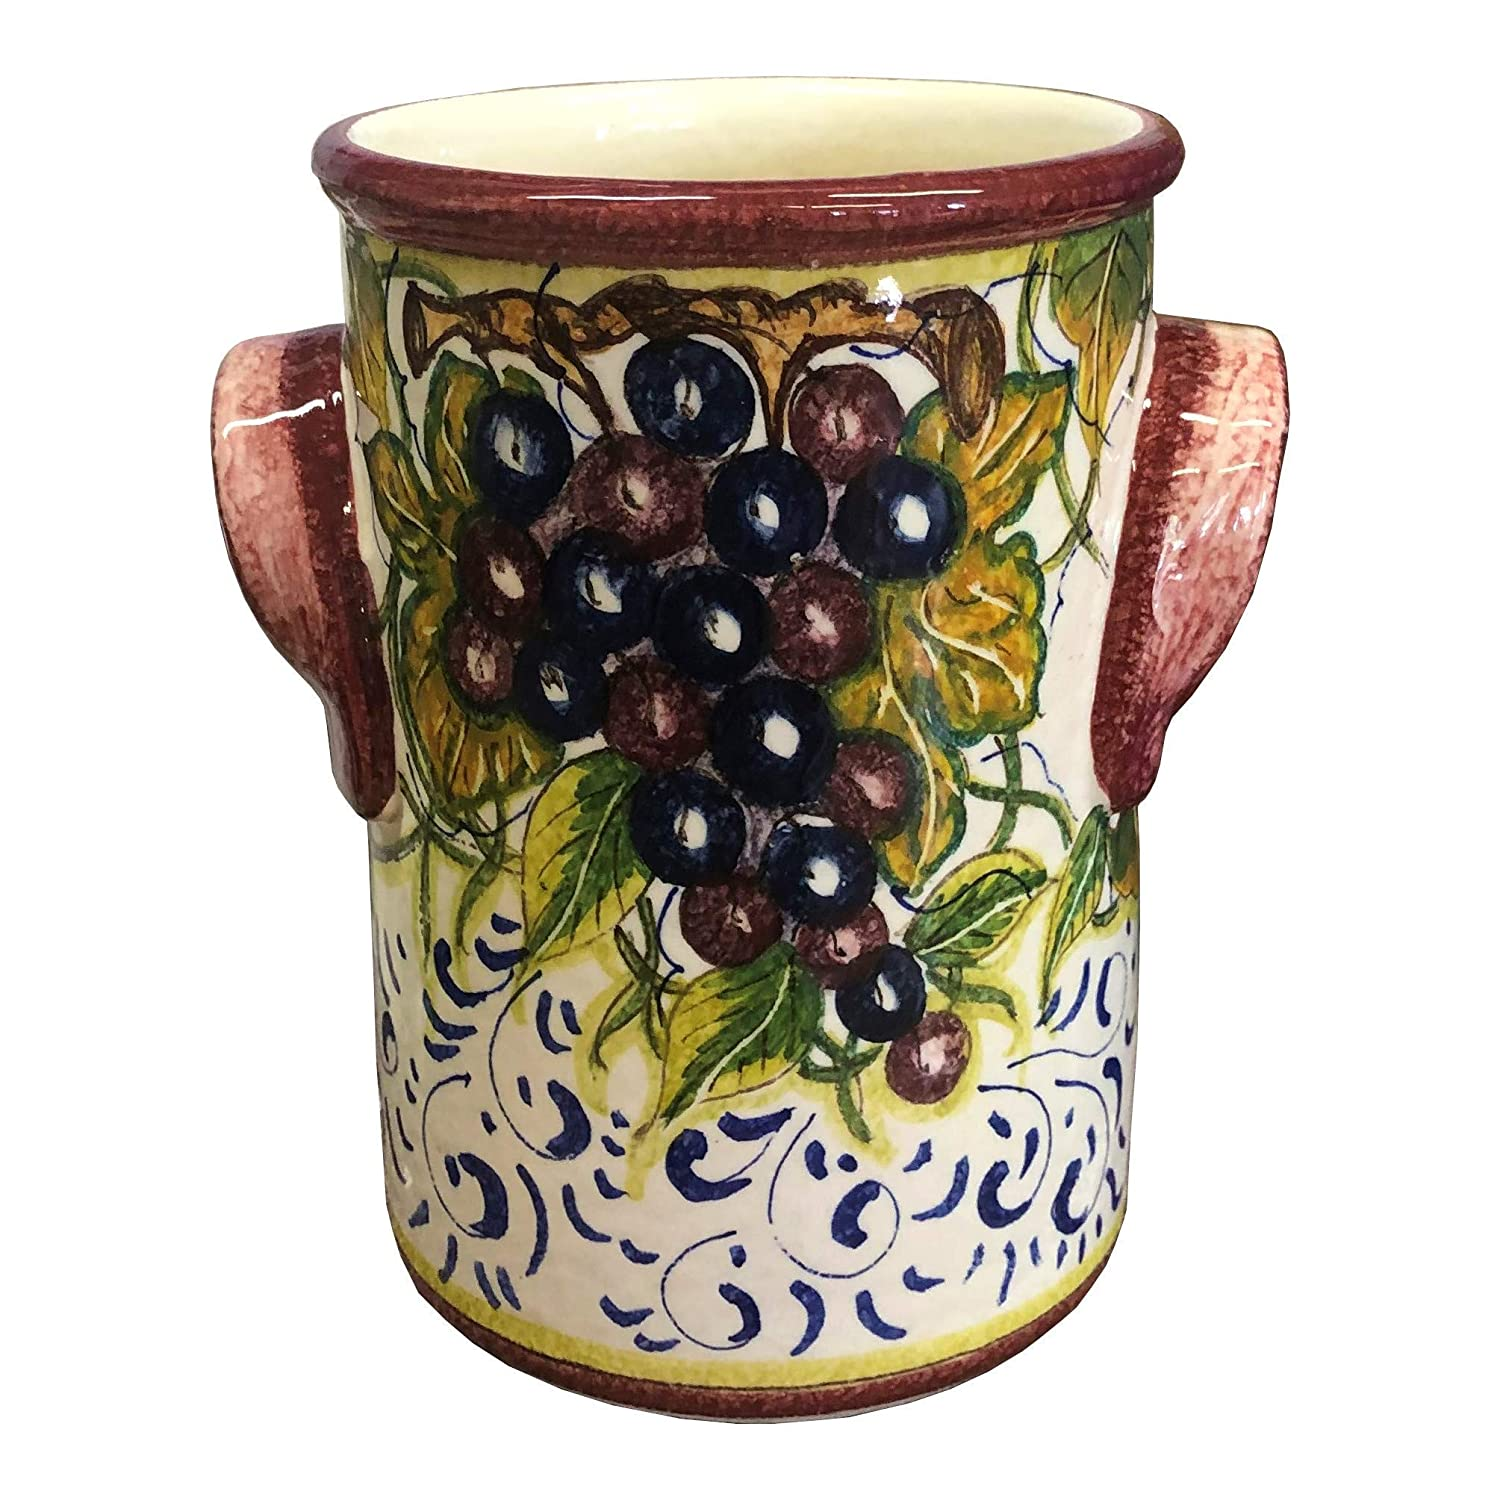 Italian Ceramic Utensil Holder